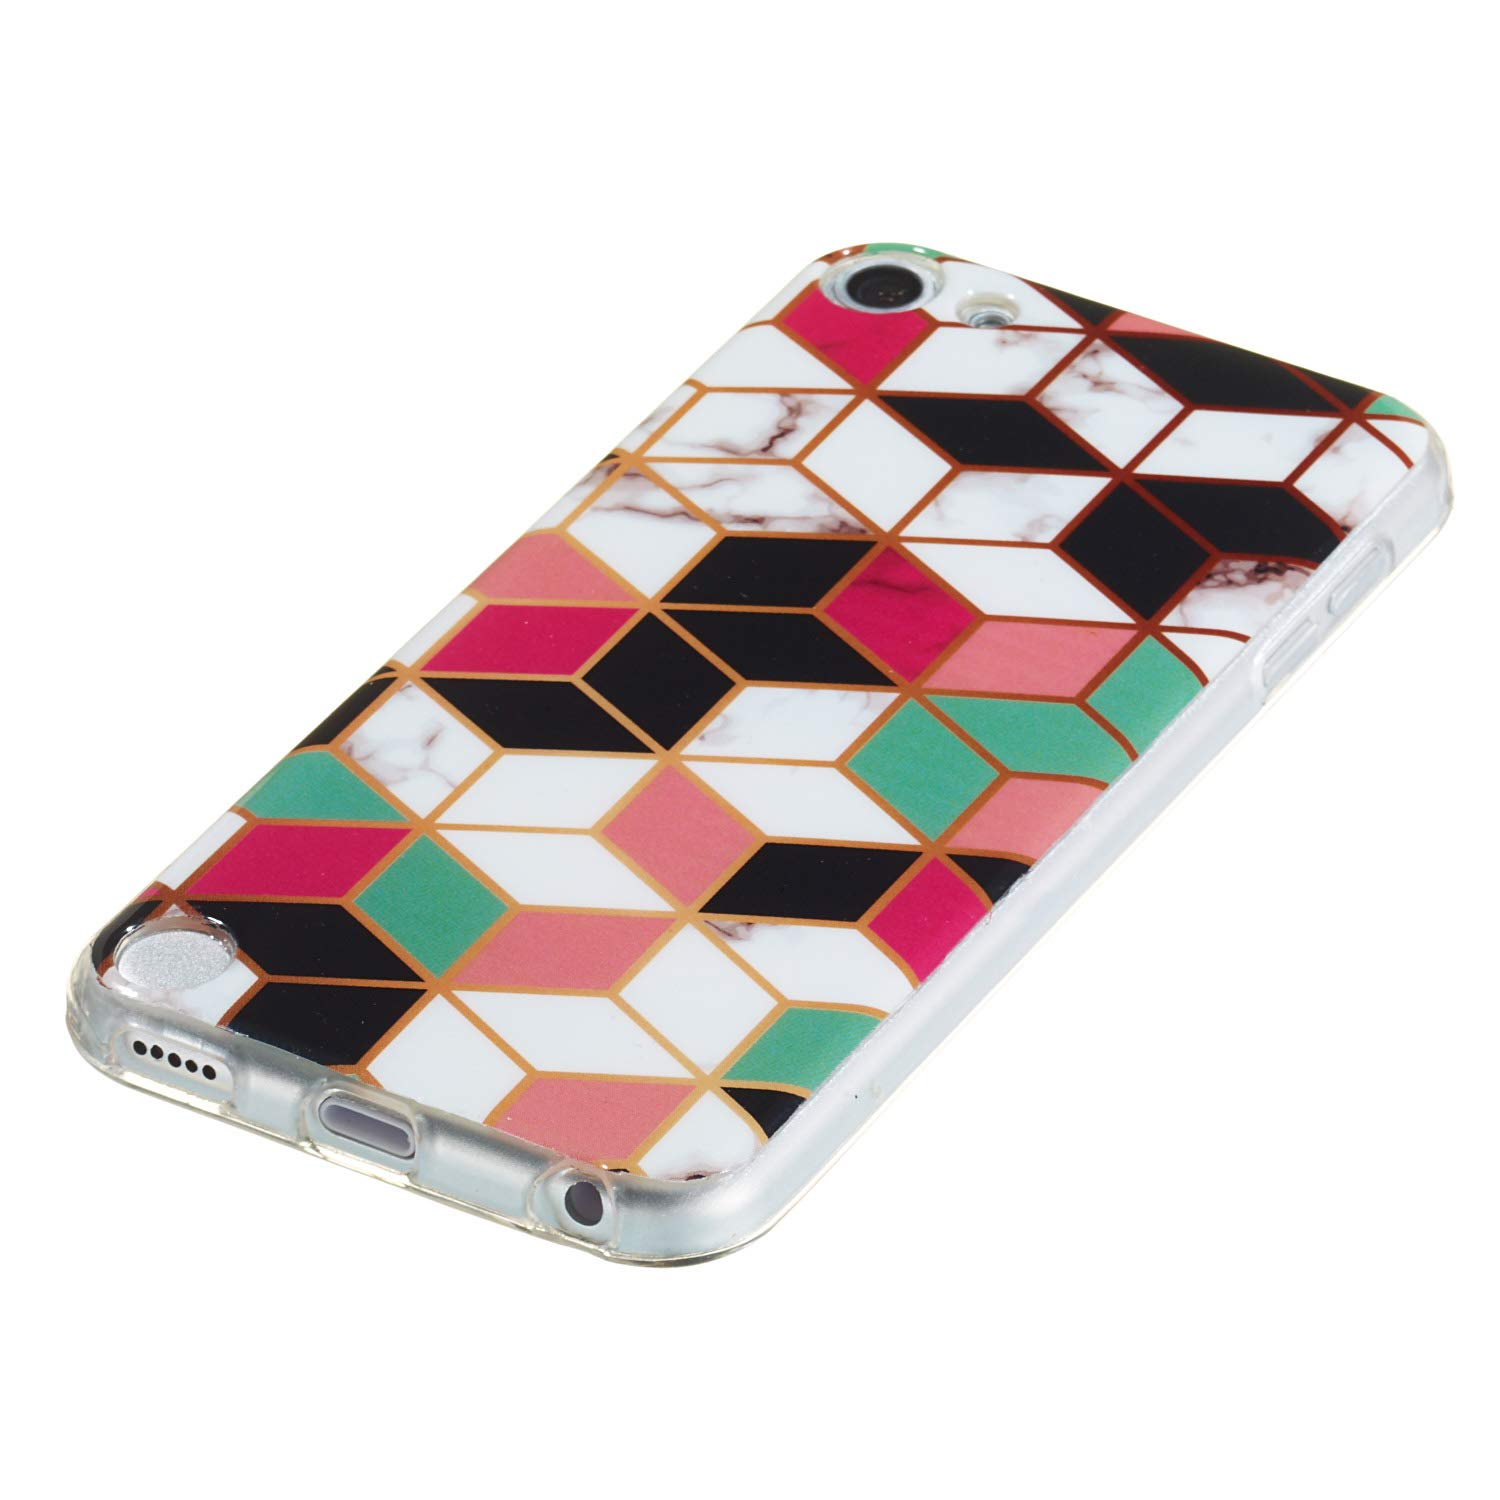 Touch 5 Case Soft Silicone Case Shockproof Anti-Scratch Case Cover for Apple iPod Touch 6 Lomogo iPod Touch 6 Touch 5 LOYHU260092 L2